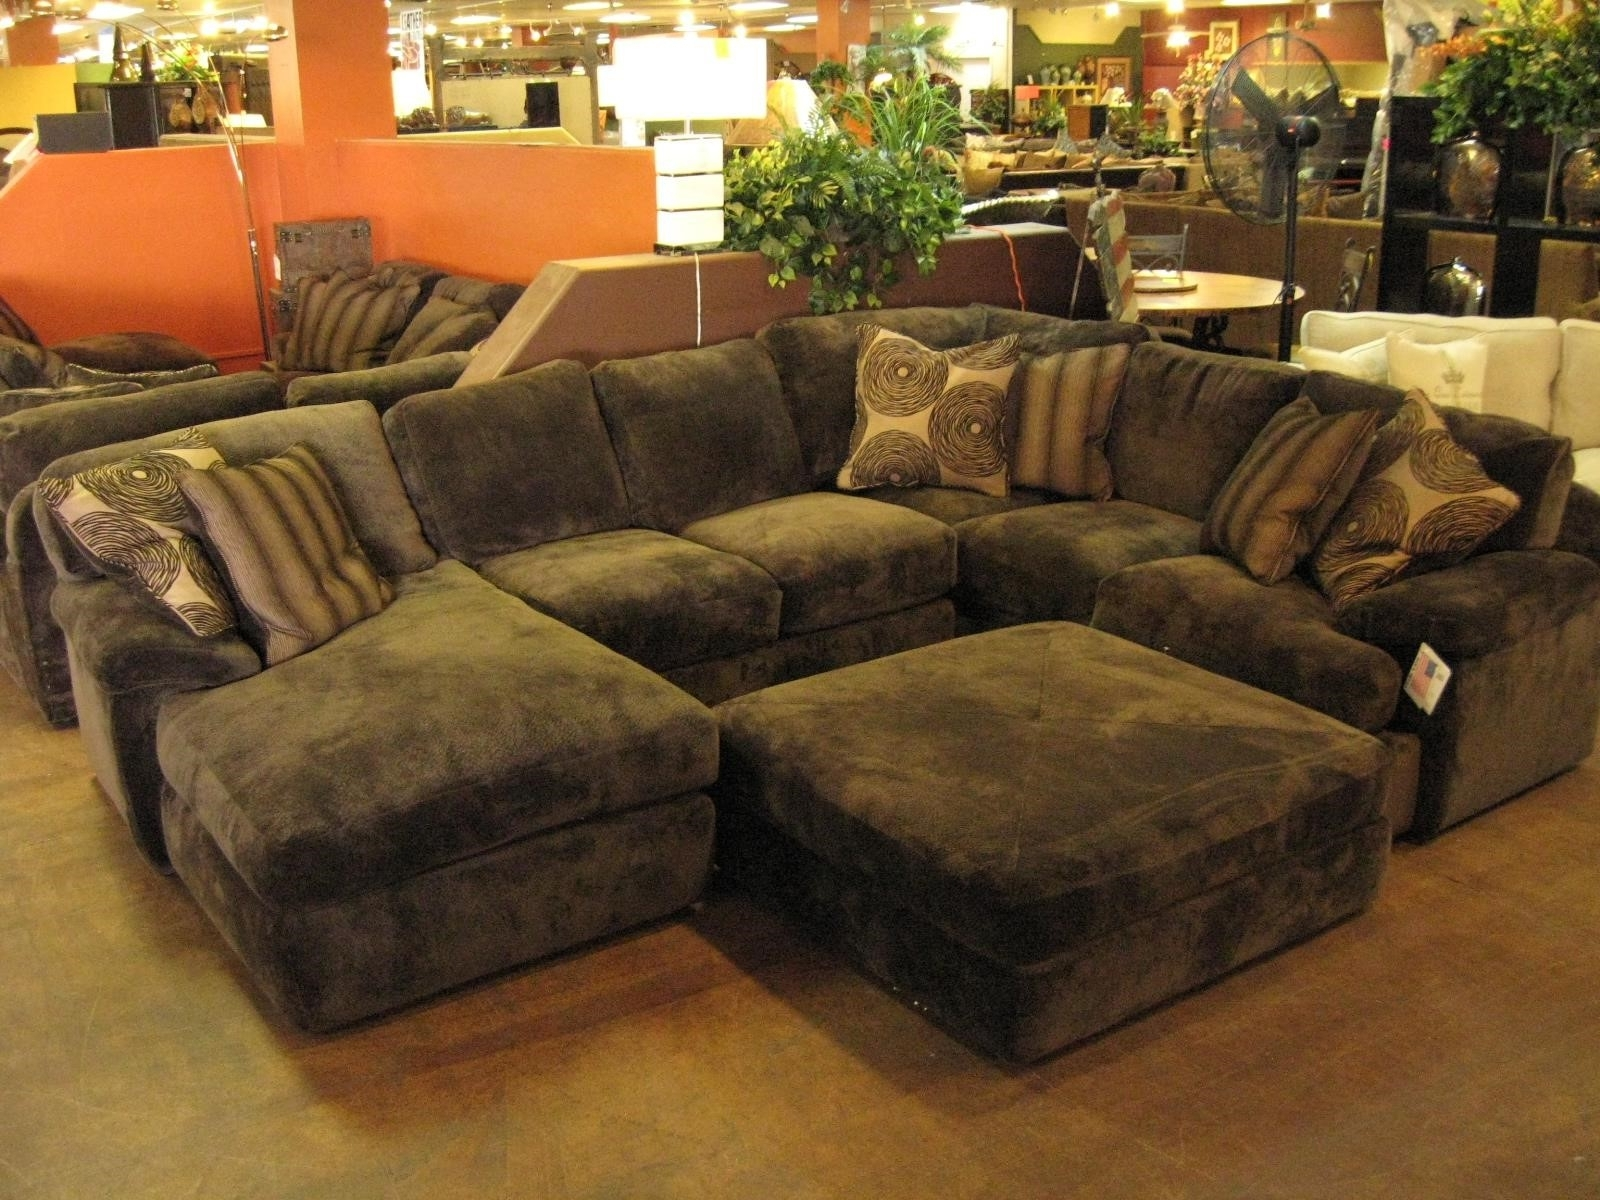 Most Popular Large Sectional Sofas With Regard To Sofa : Magnificent Large Sectional Sofa With Chaise Reclining (View 5 of 20)